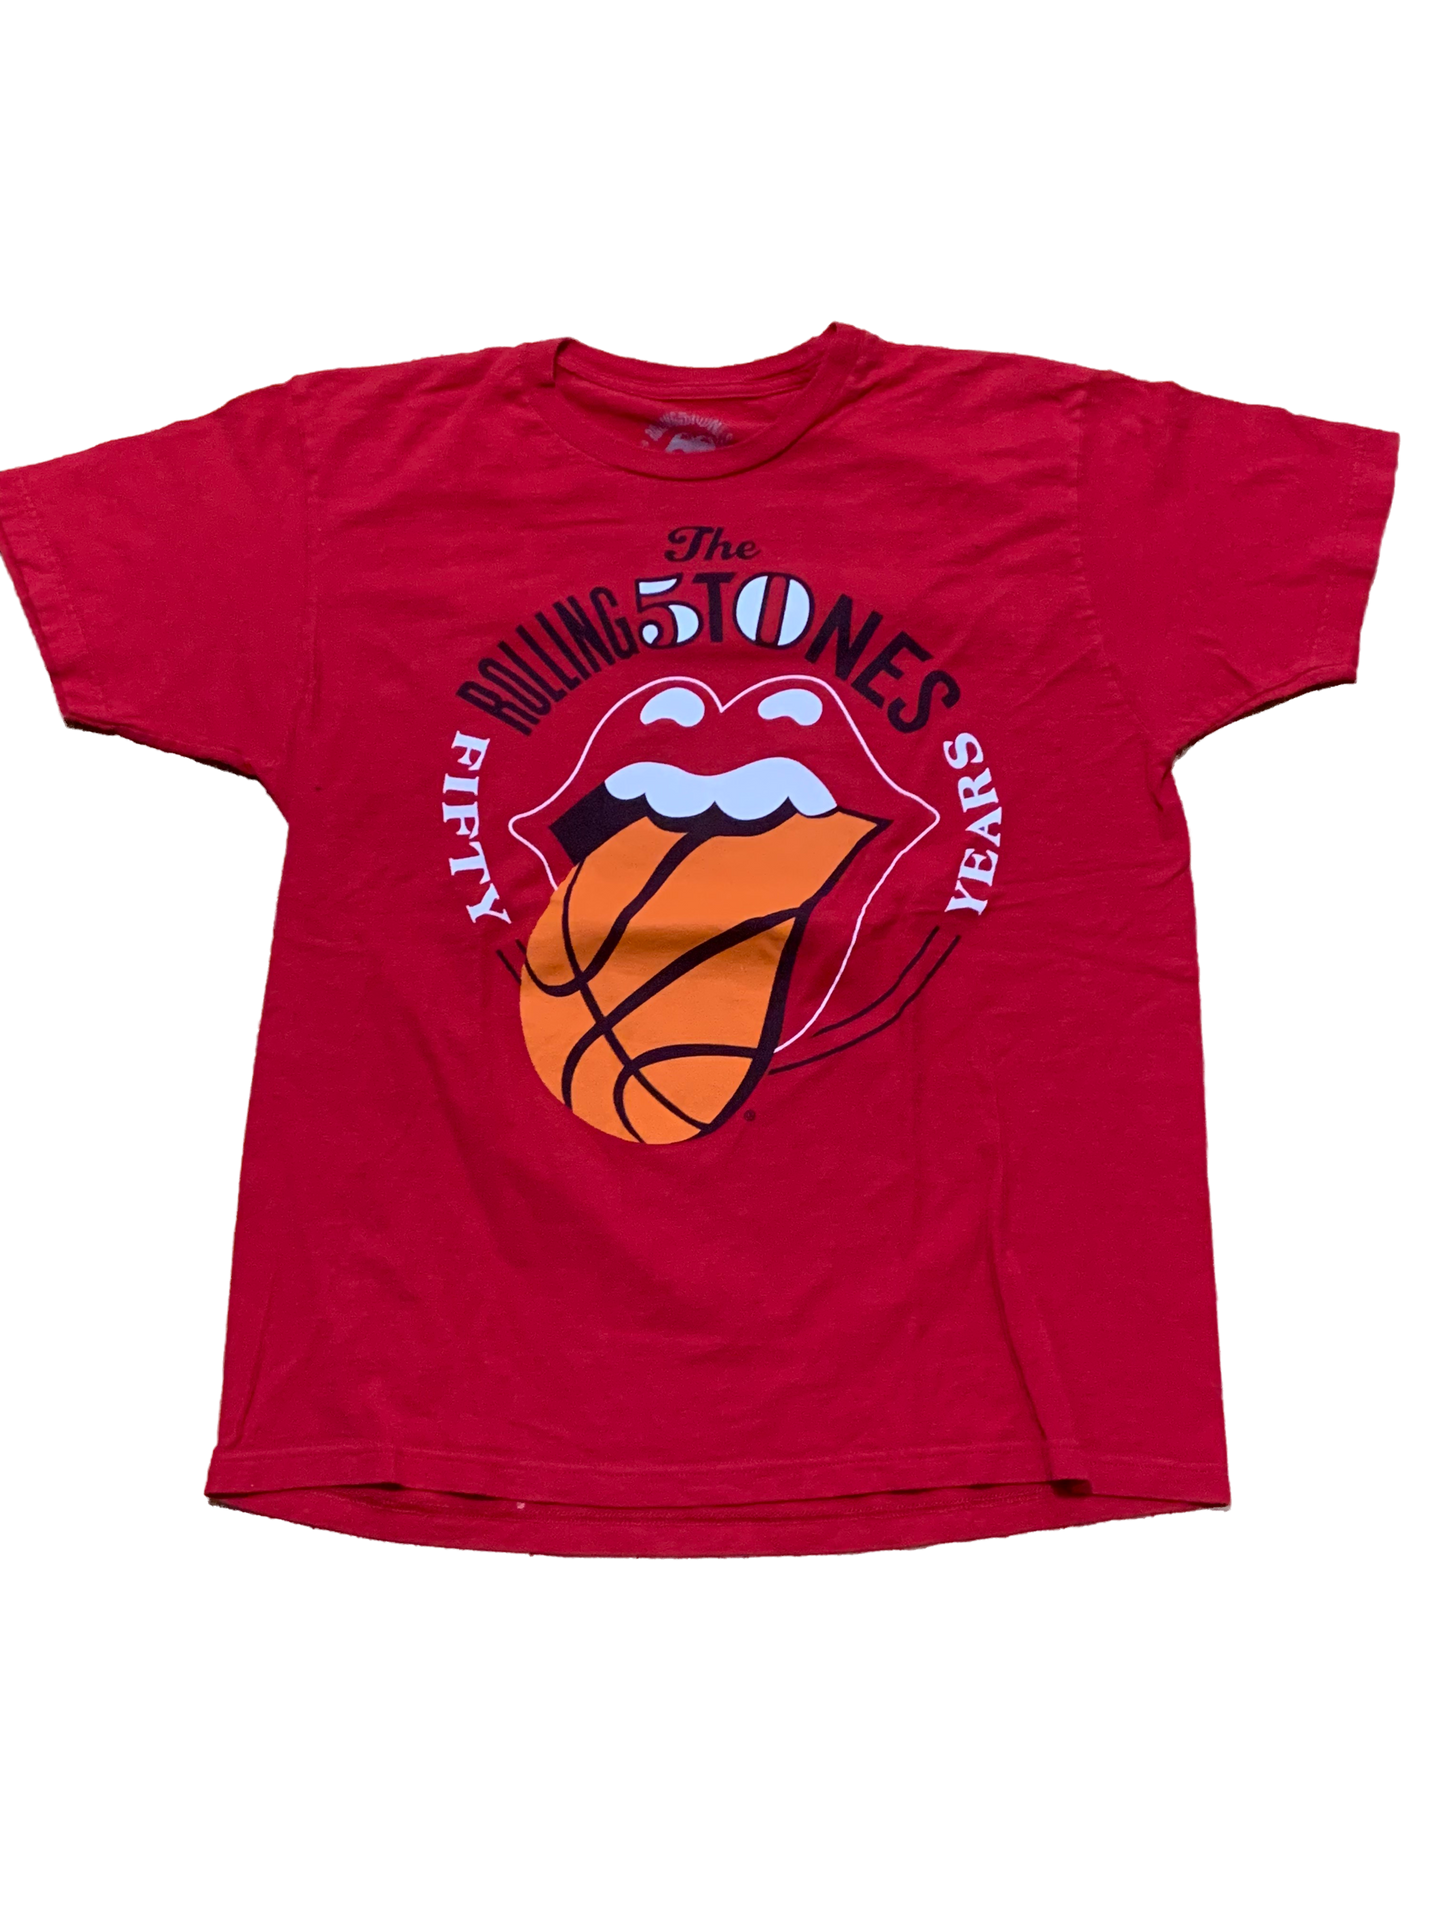 Vintage Rolling Stones Tee (Chicago Basketball)